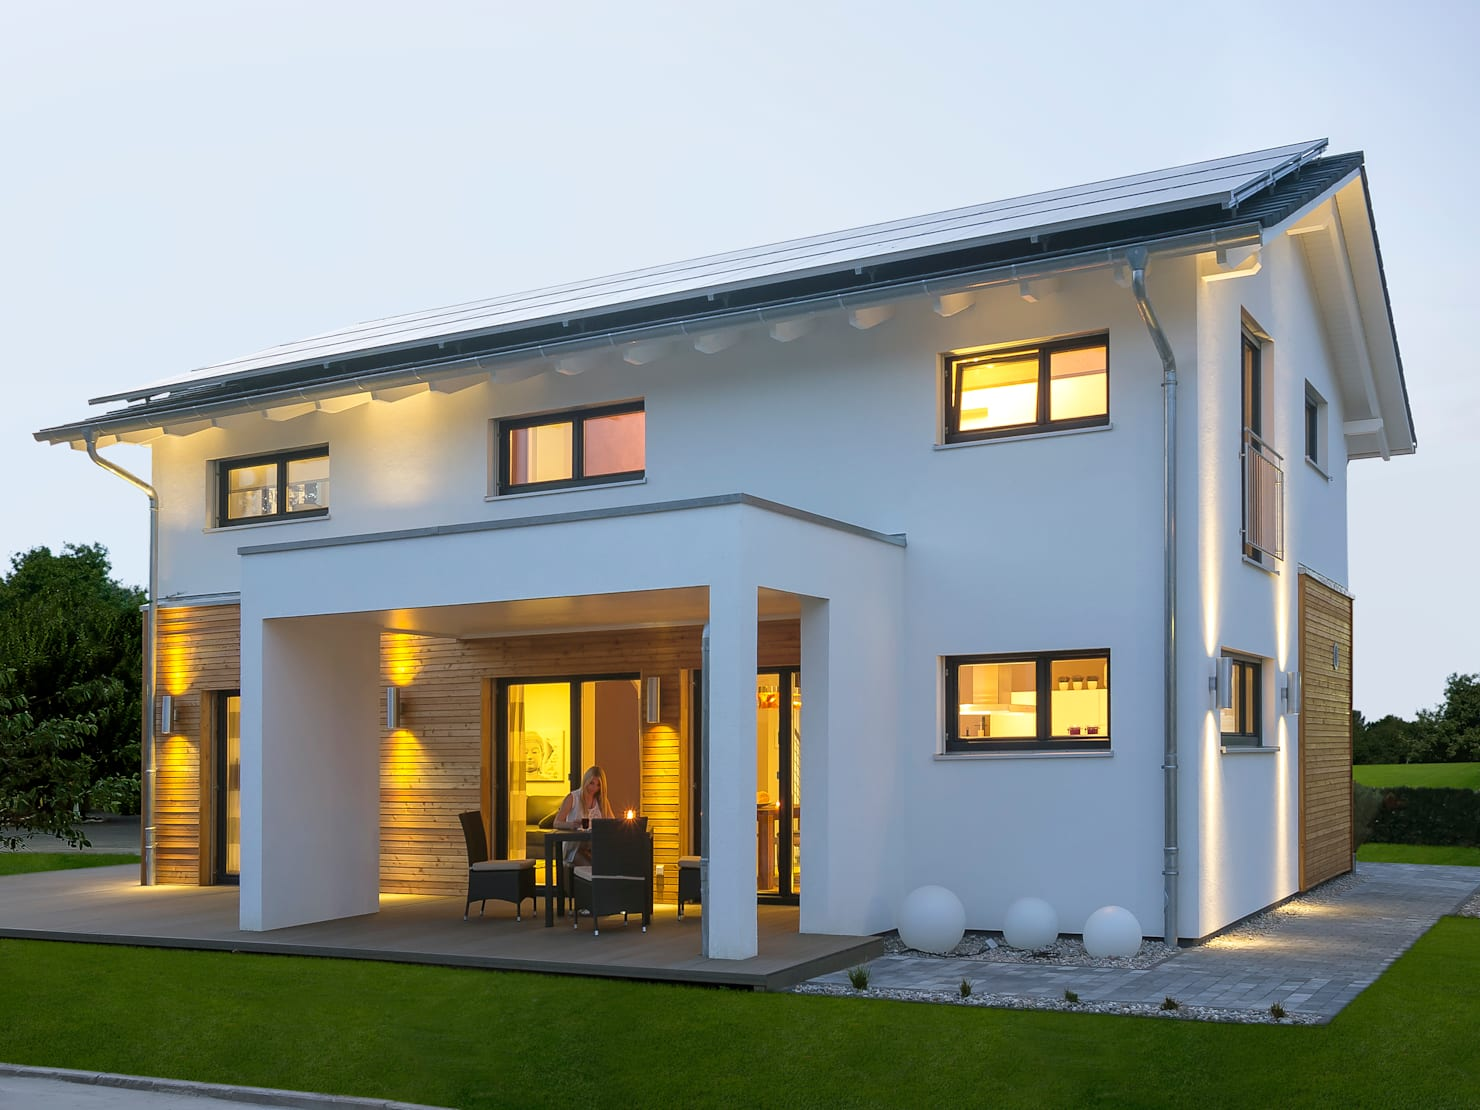 A marvelous home for families with kids